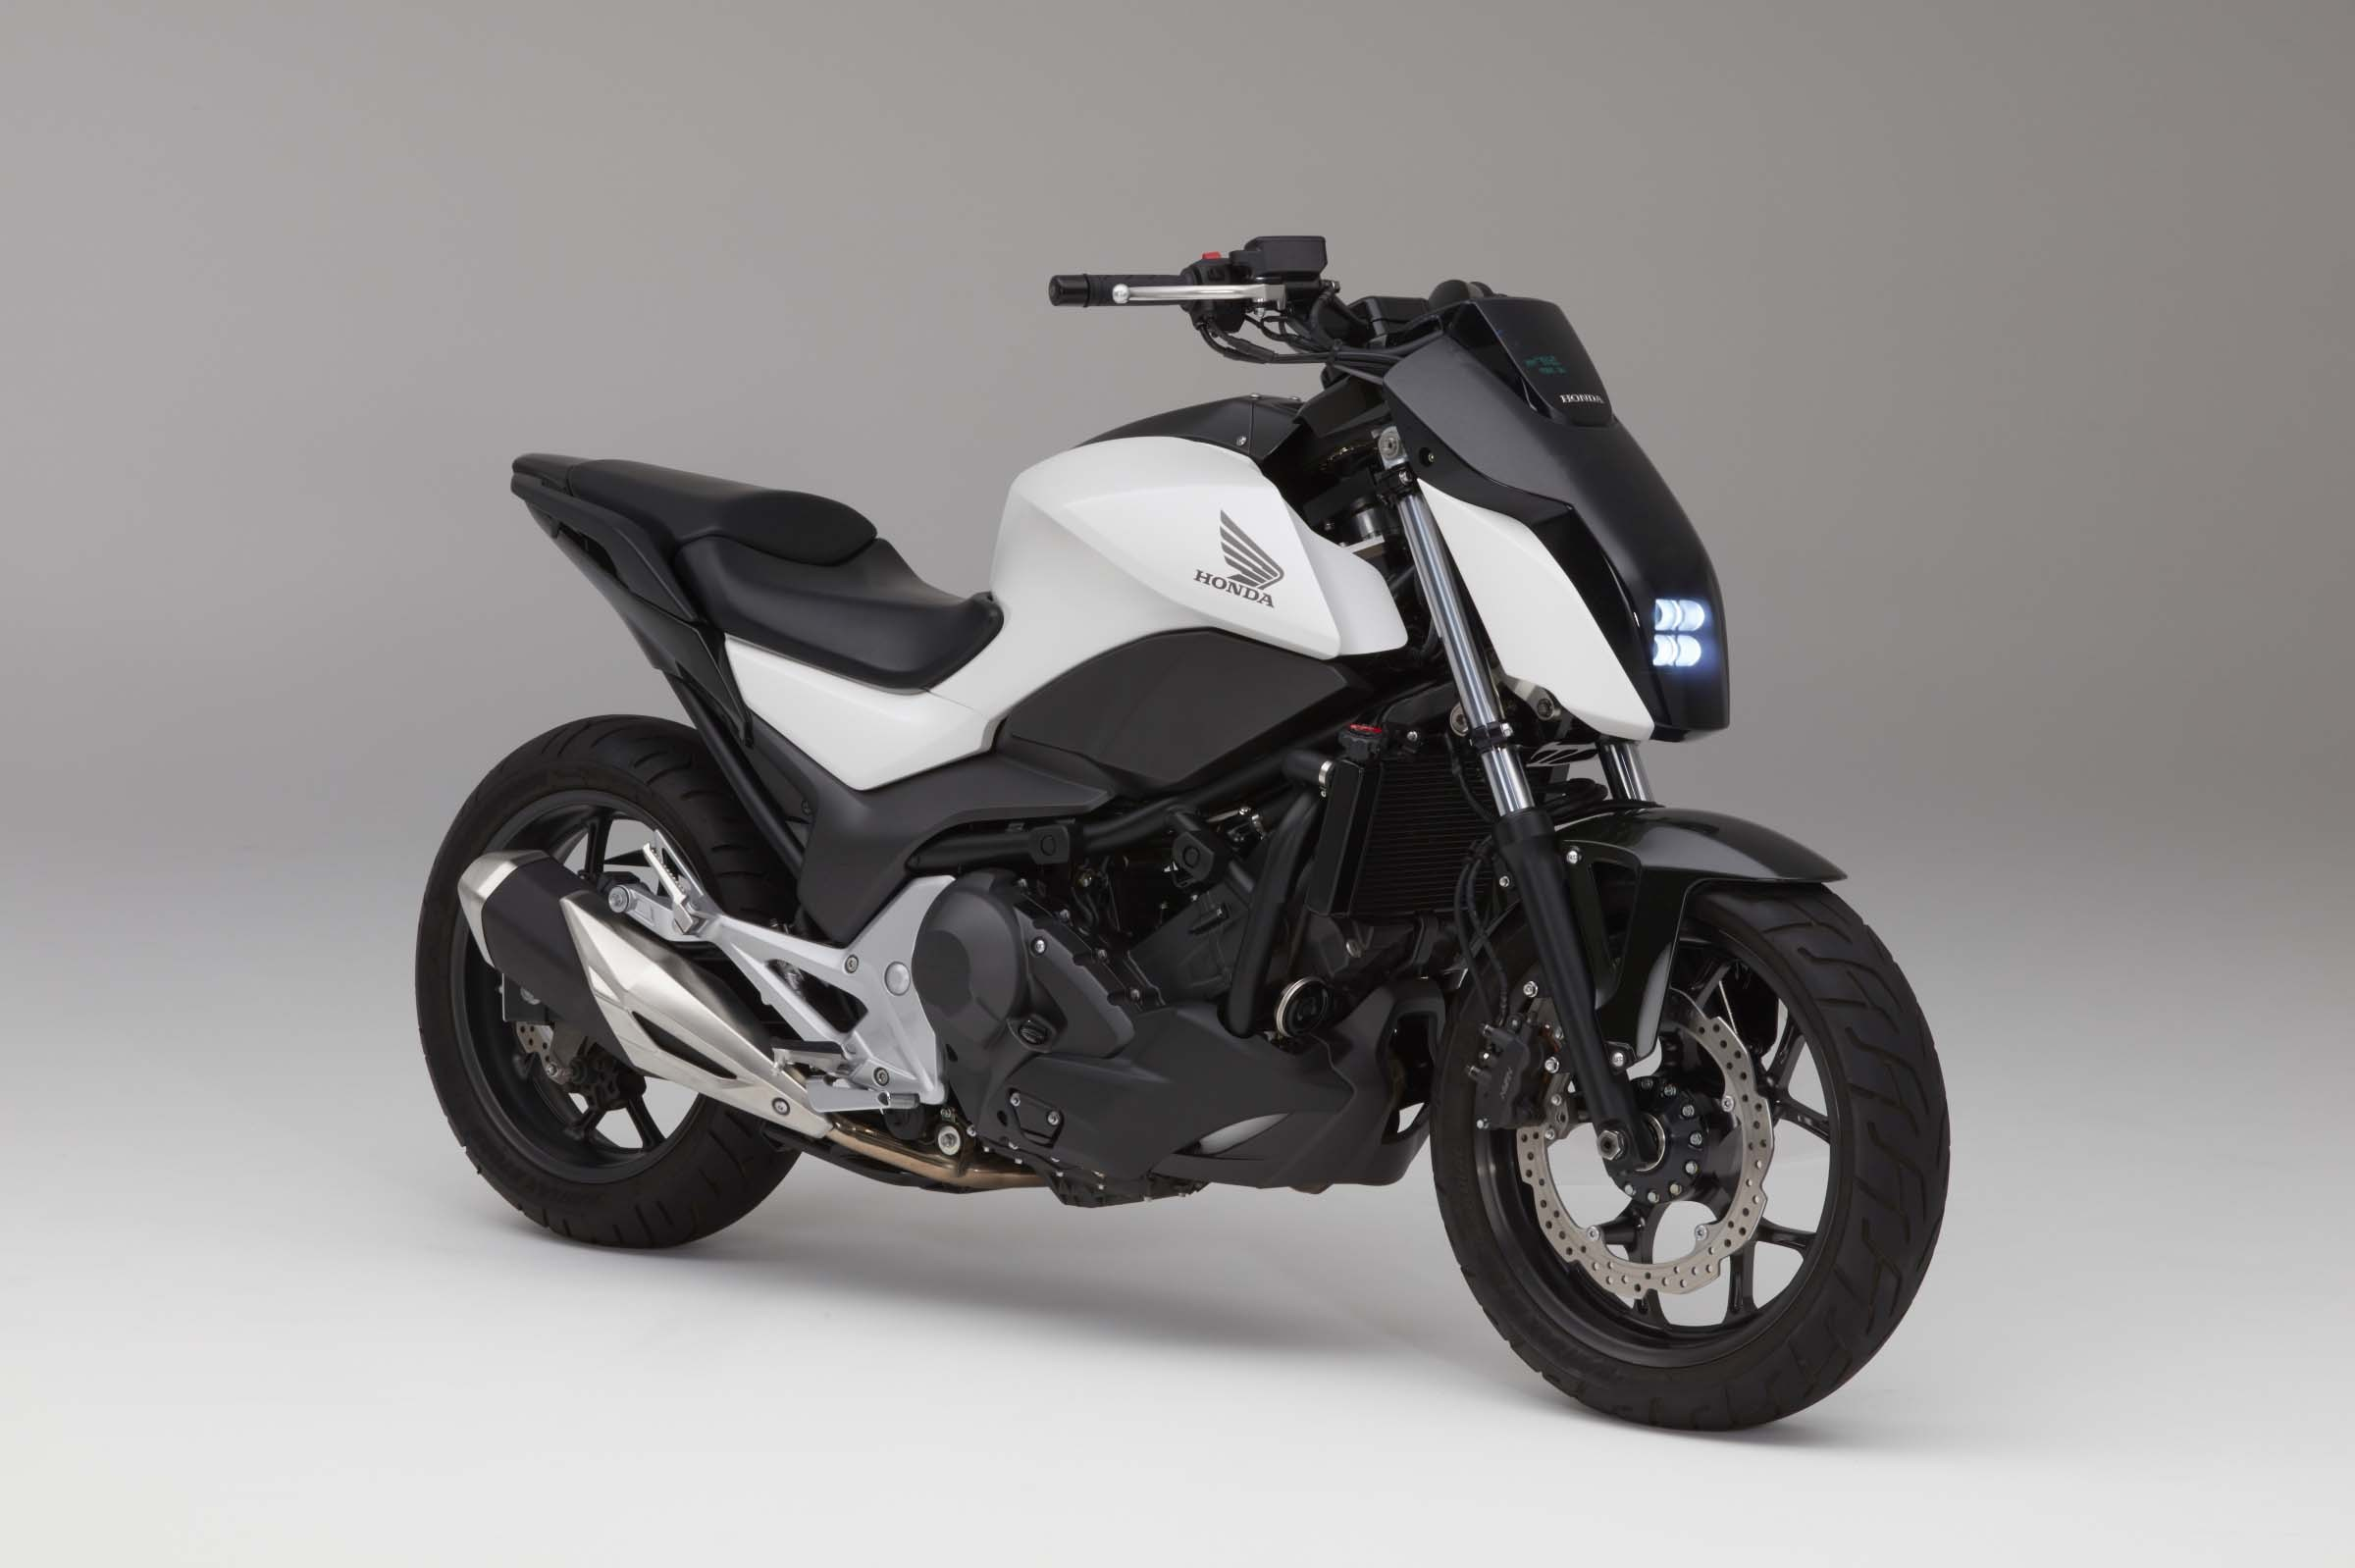 2018 honda gl1800. wonderful 2018 to put launch their latest electricpowered scooter for 2018 in an  effort promote more sales and awareness towards electric vehicles worldwide inside honda gl1800